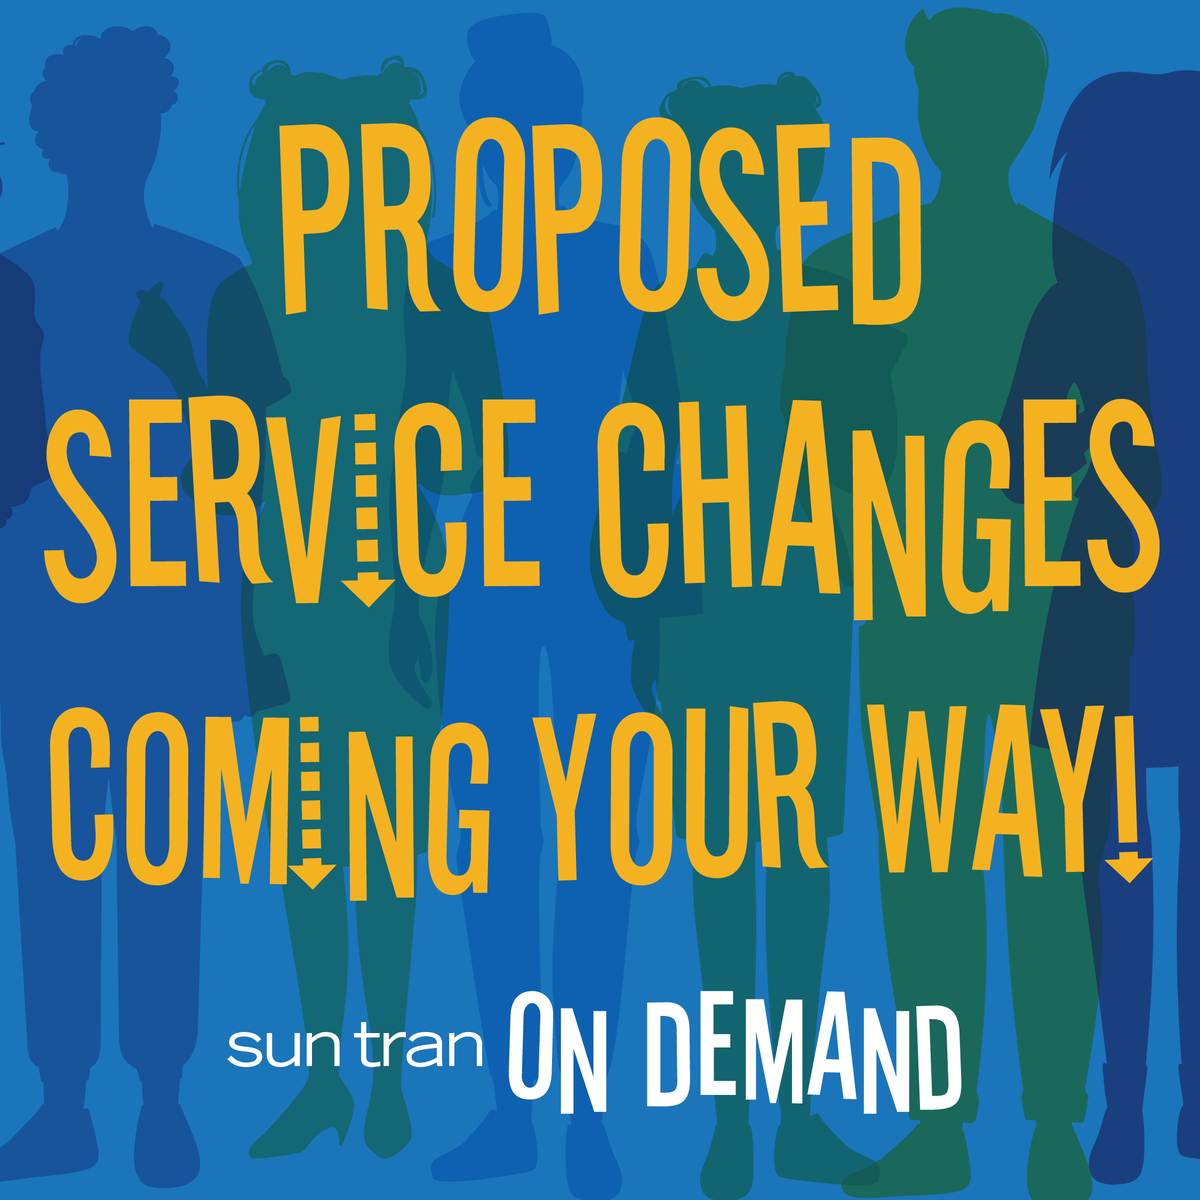 Sun Tran On Twitter Today Join A Proposed Service Changes Virtual Meeting For Ward 1 Neighborhoods On Demand Program Rt 22 12 00 Pm Https T Co 7d5yt9jduo Call In 1 213 293 2303 Conference